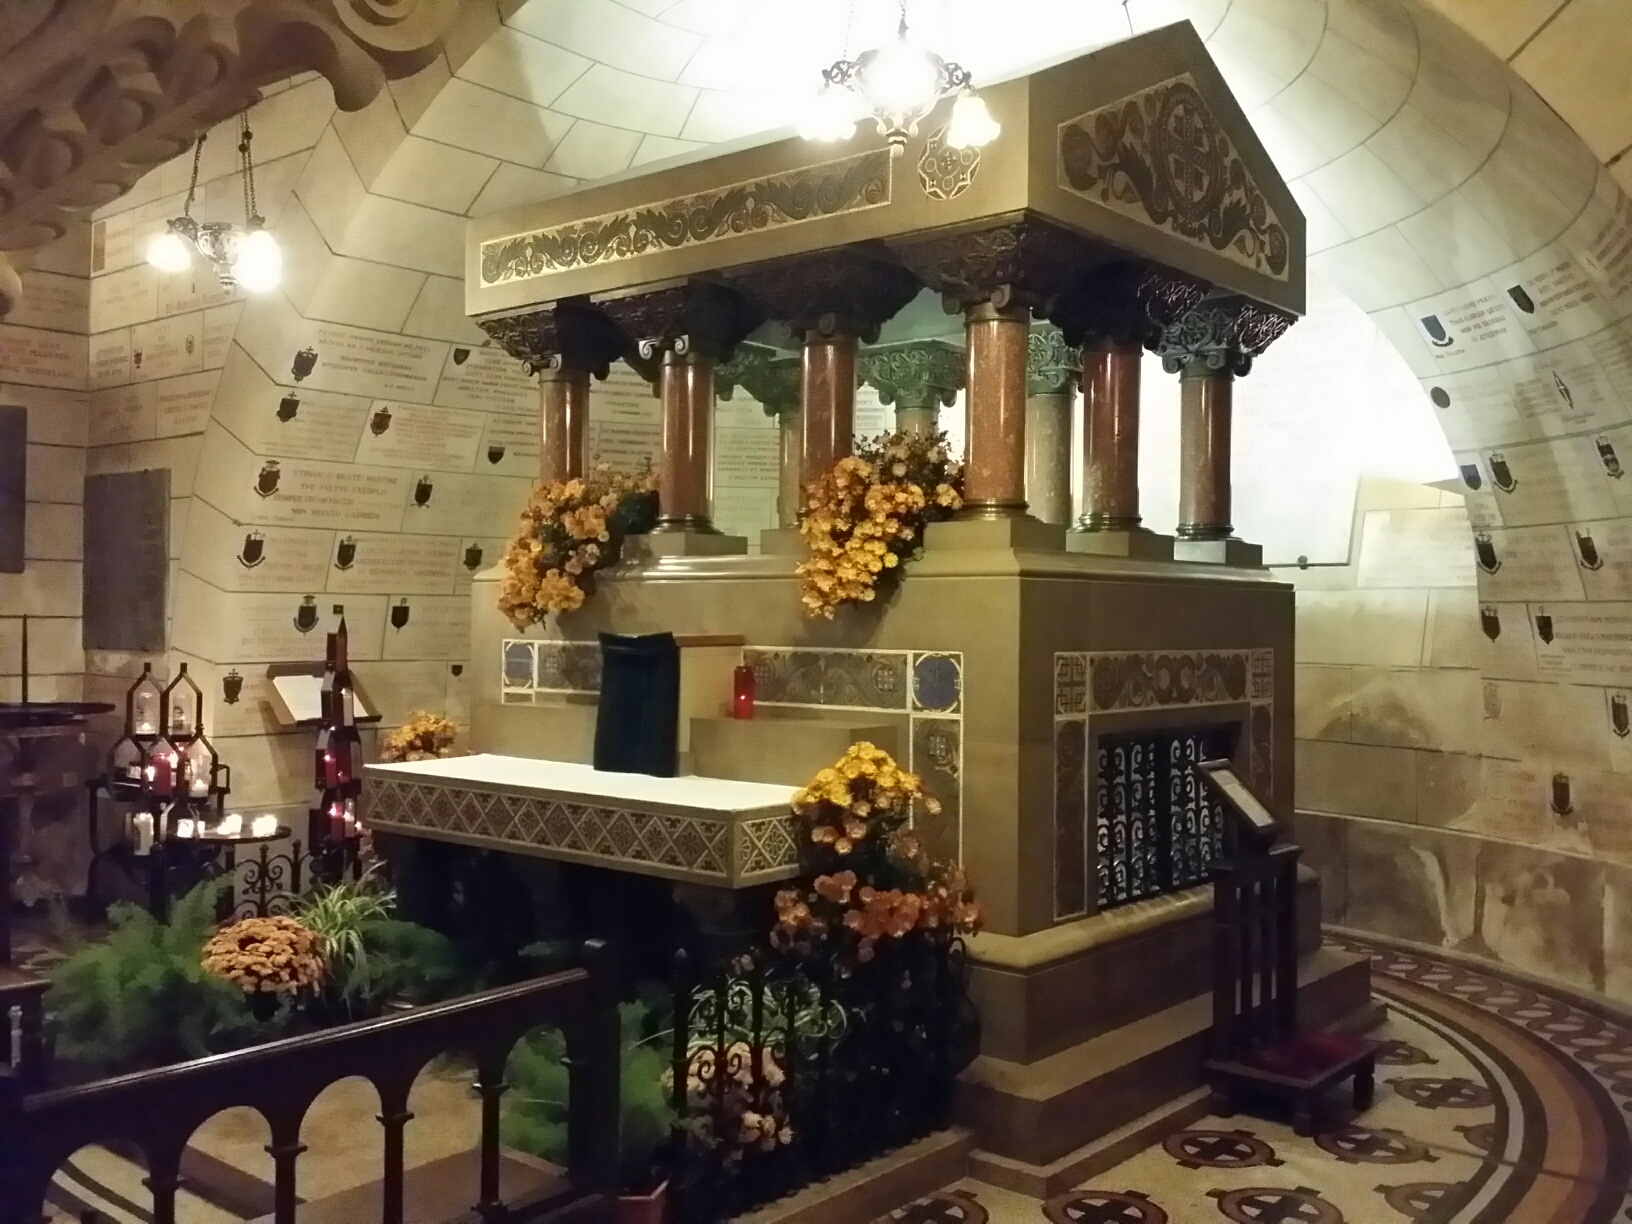 Tomb of Saint Martin in the crypt of the  Basilique St - Martin.